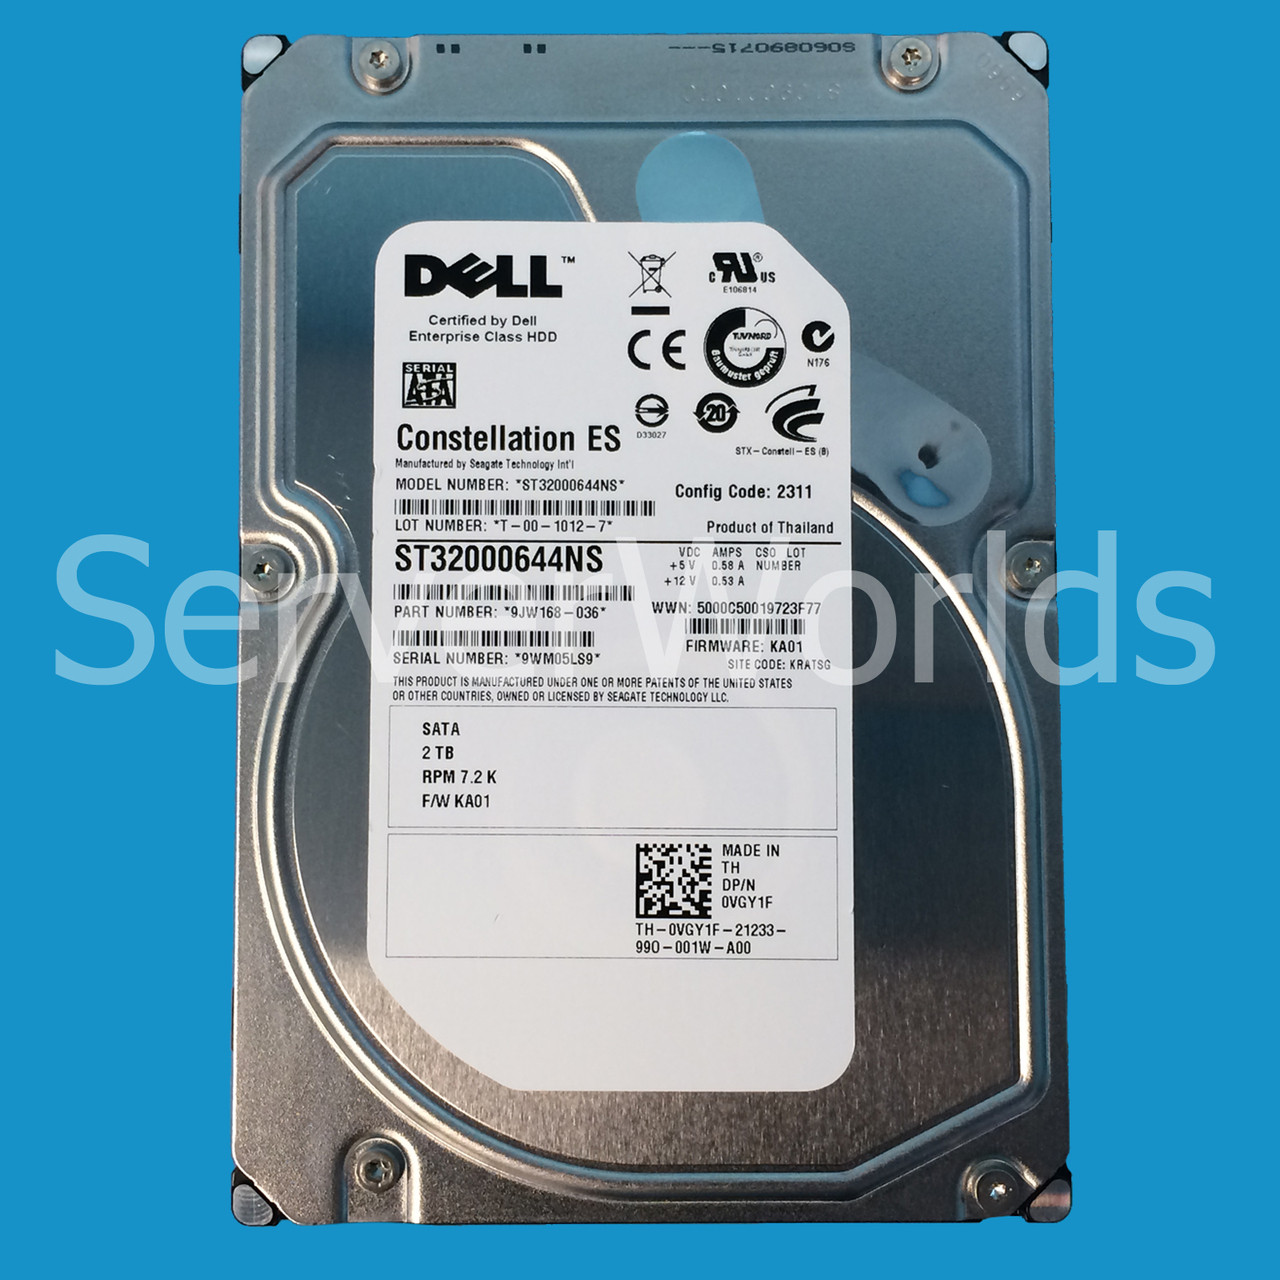 Driver: Dell XPS 8300 Seagate ST32000641AS